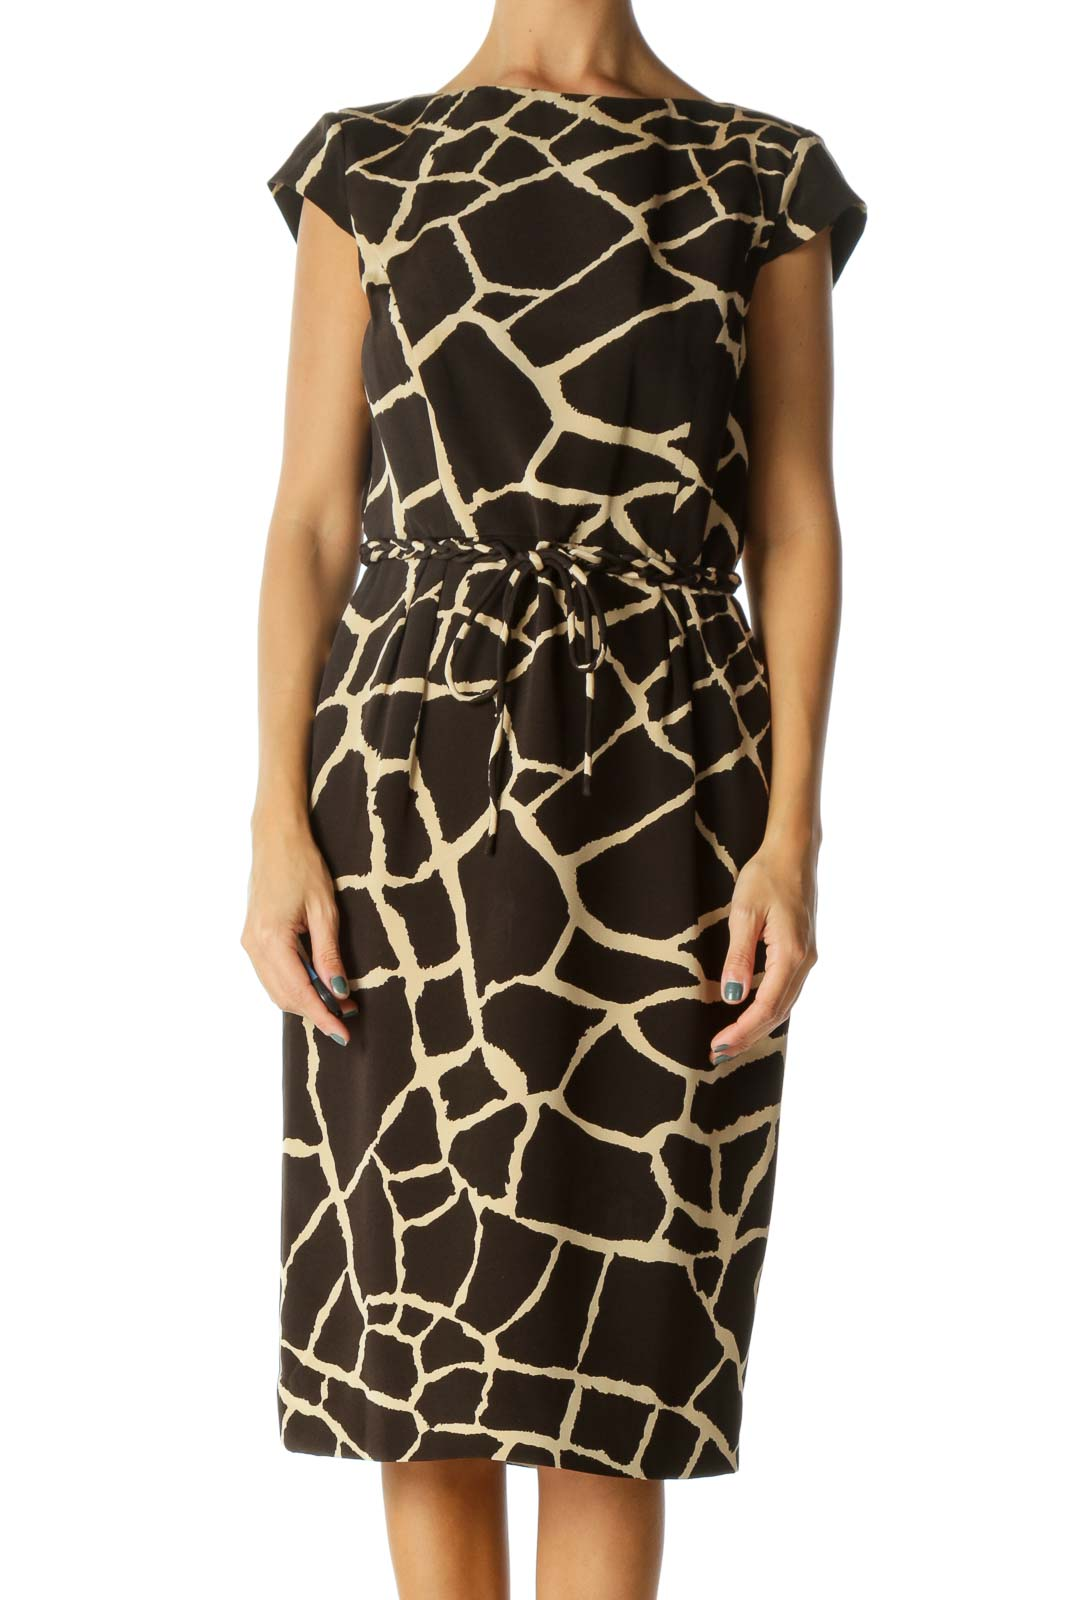 Brown and Cream Animal Print Sheath Dress